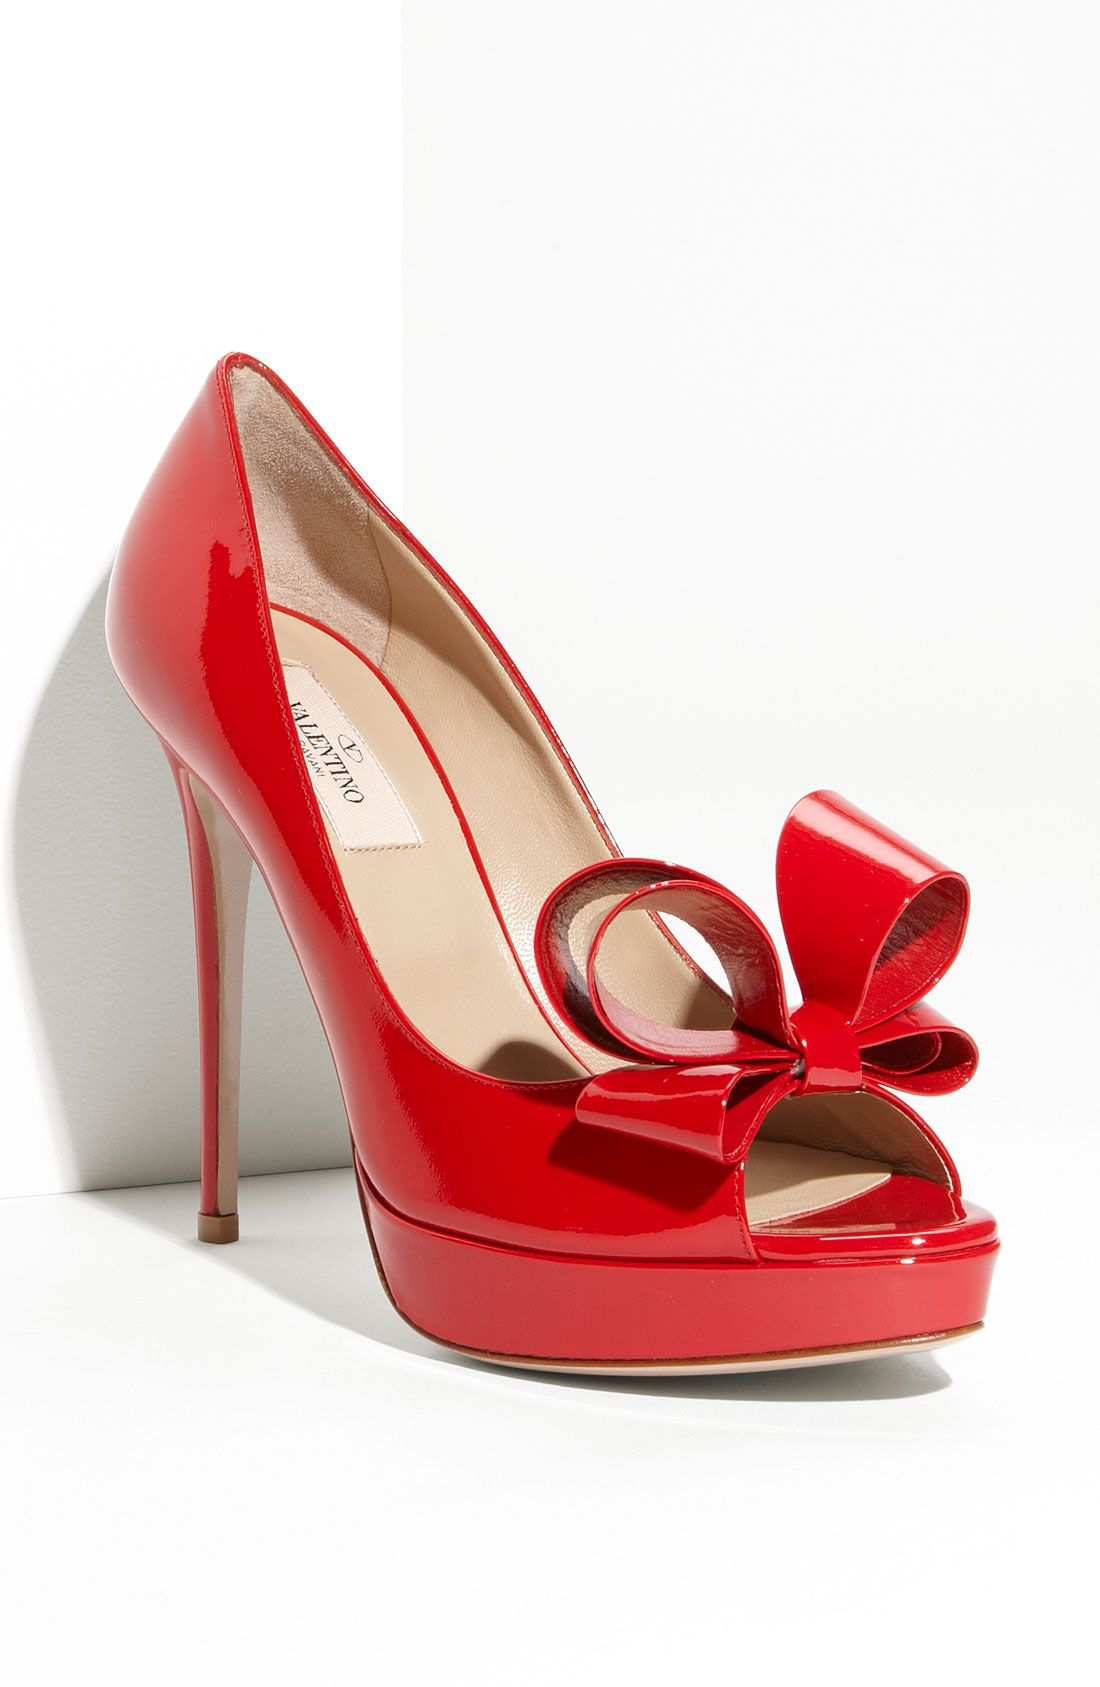 6c734775492 Head over heels for these gorgeous Valentino bow platform pumps ...